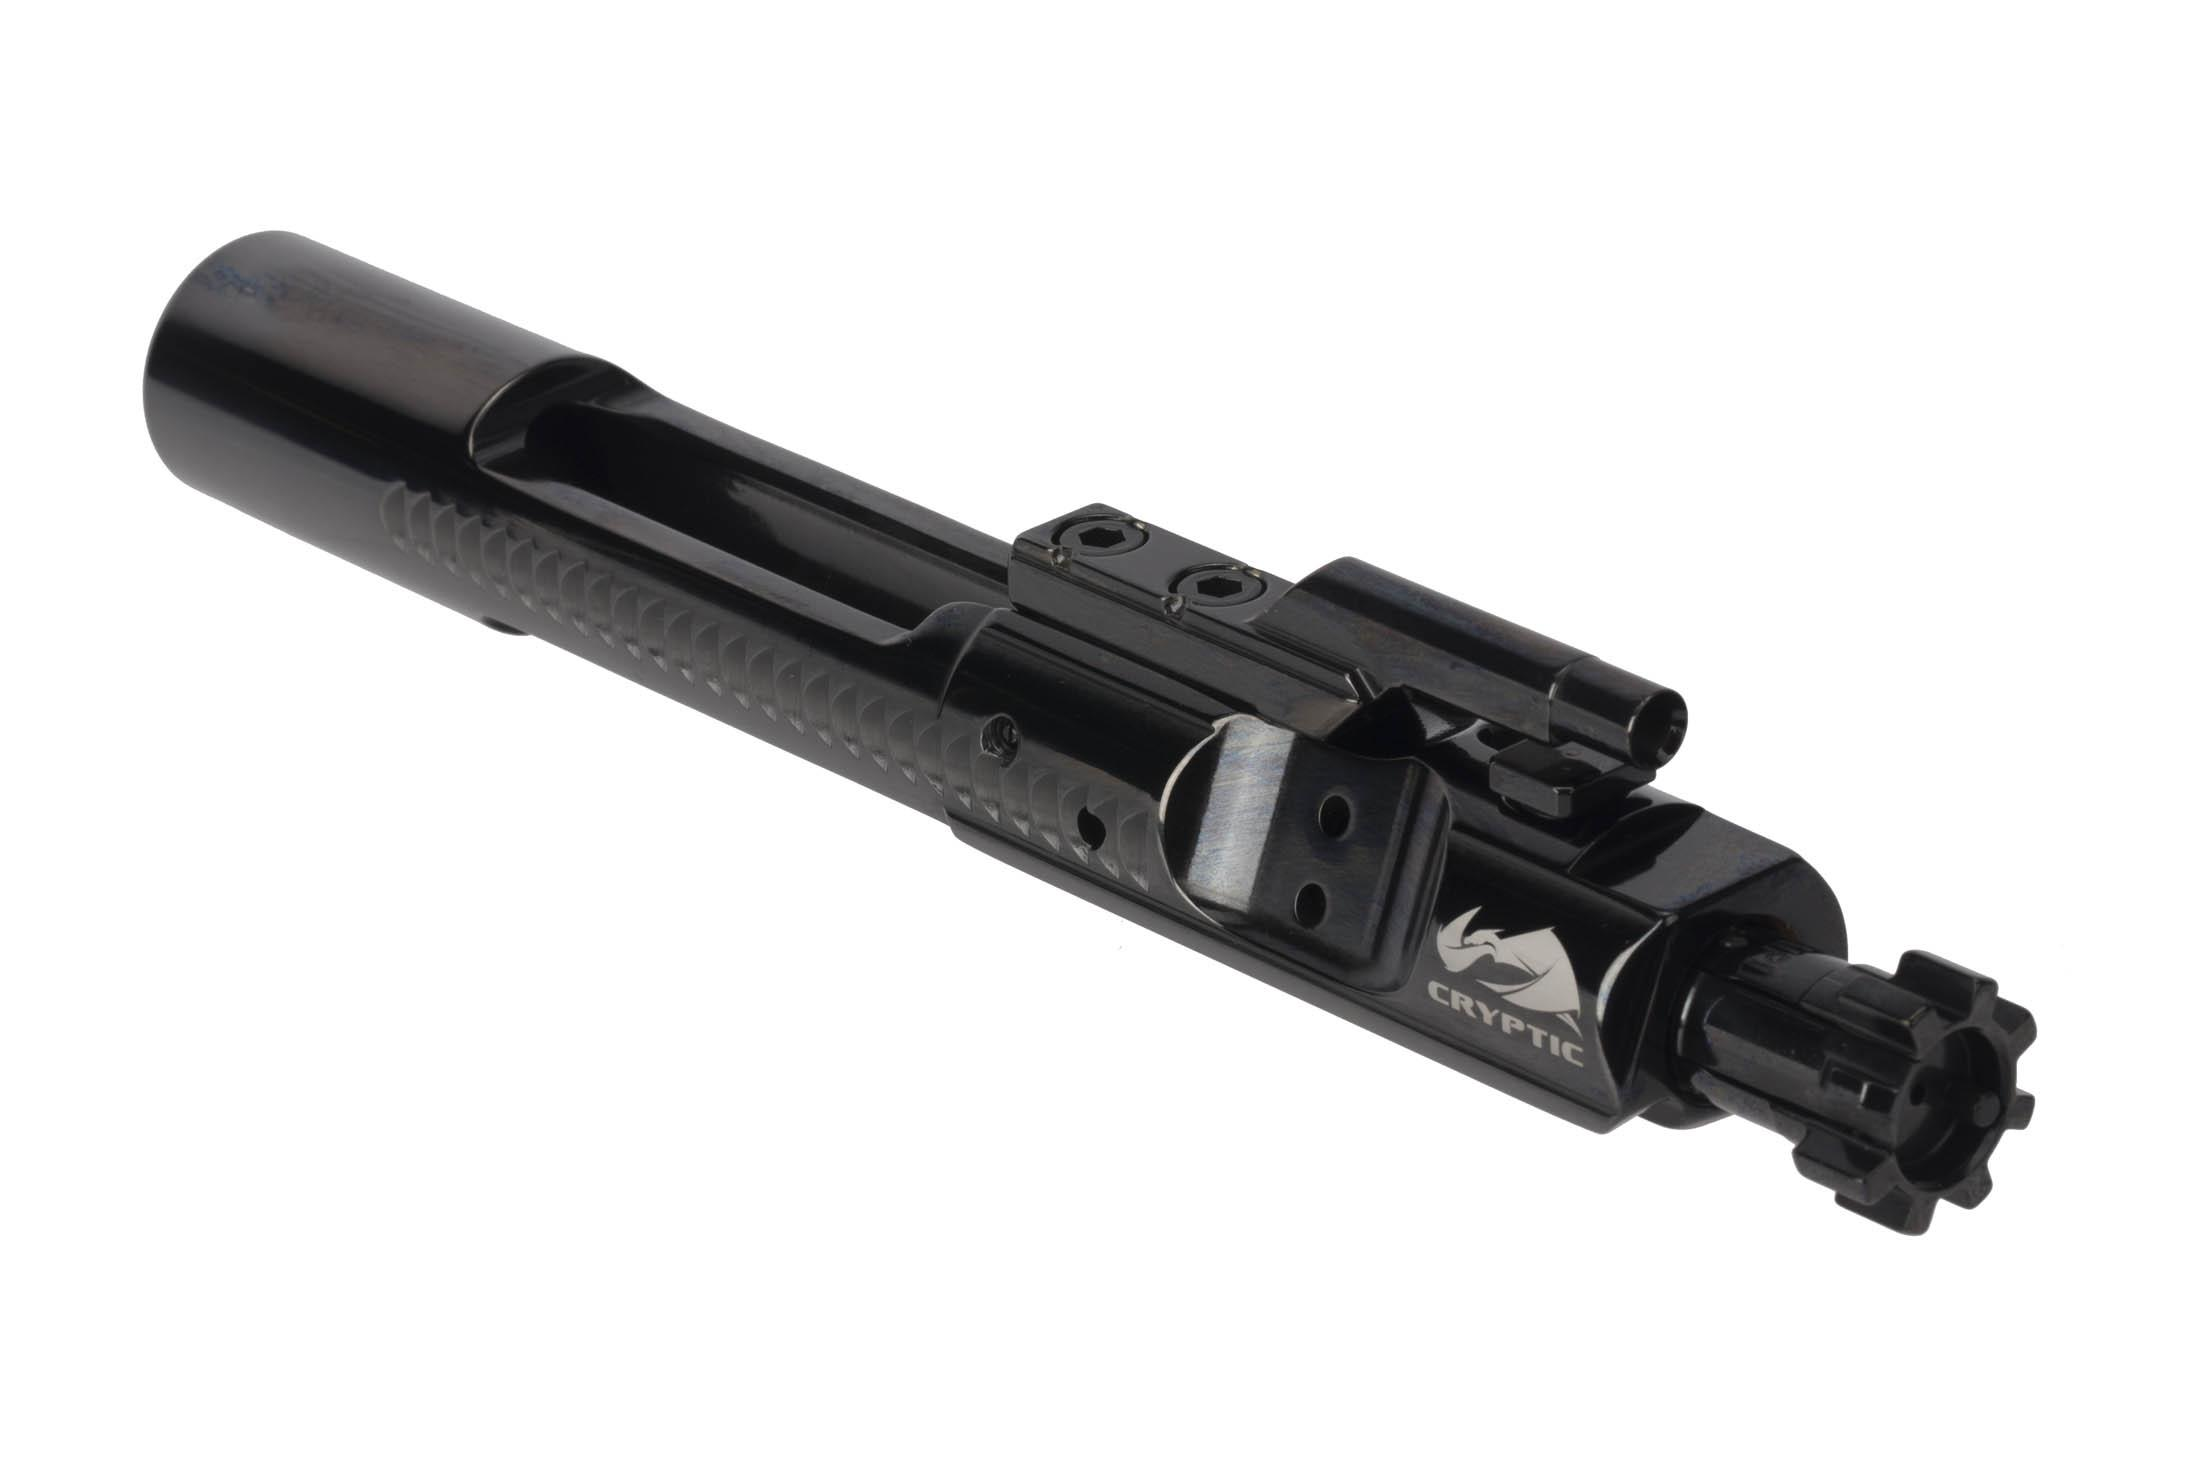 Cryptic Coatings Mystic Black AR-15 bolt carrier group uses a standard 6.8SPC magnetic particle inspected bolt assembly